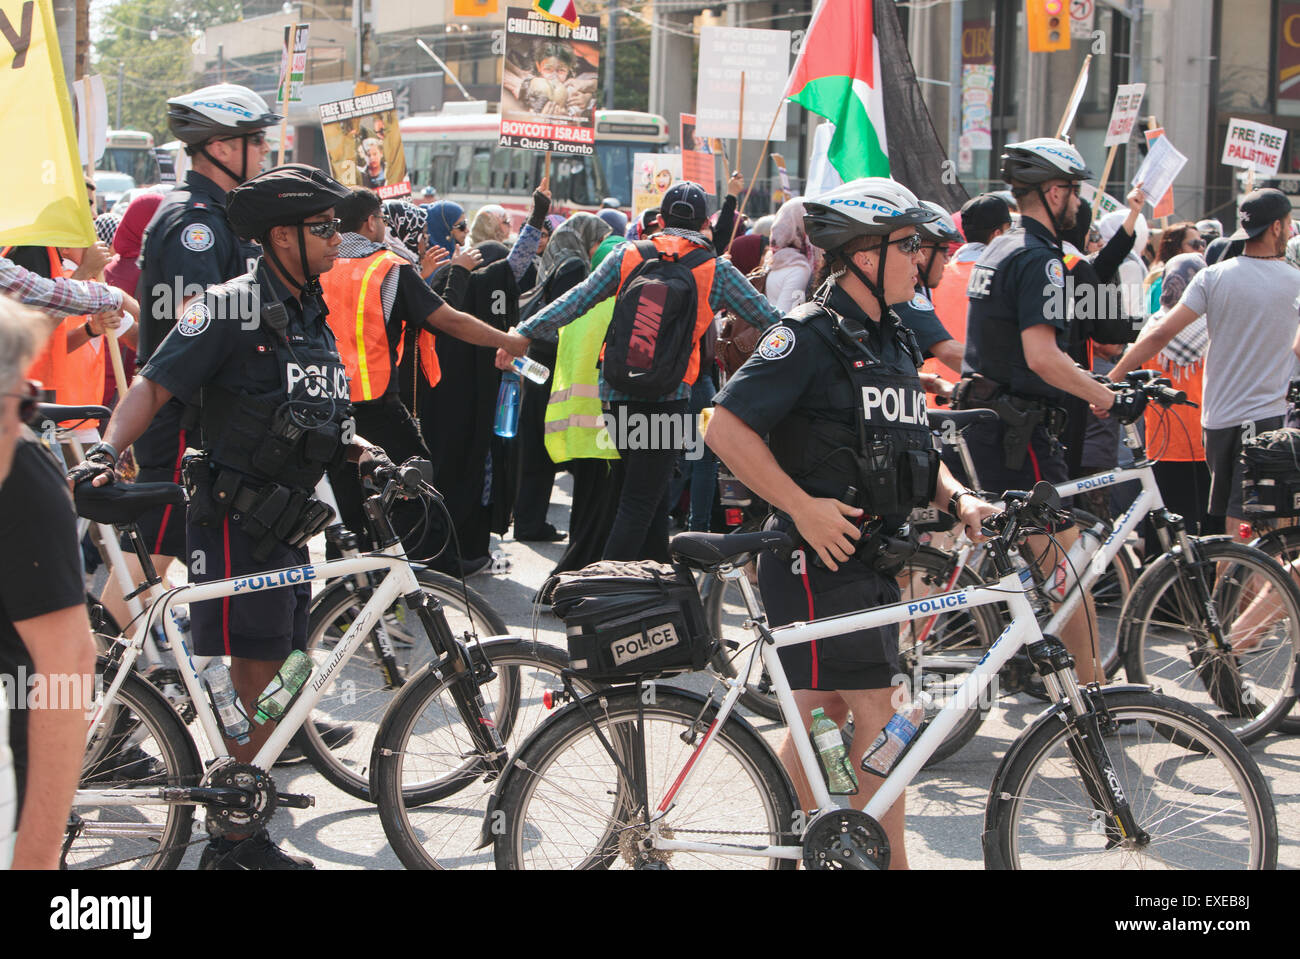 TORONTO,CANADA  JULY 11,2015:  Al Quds Day demonstration  across the street from the US Consulate General - Stock Image